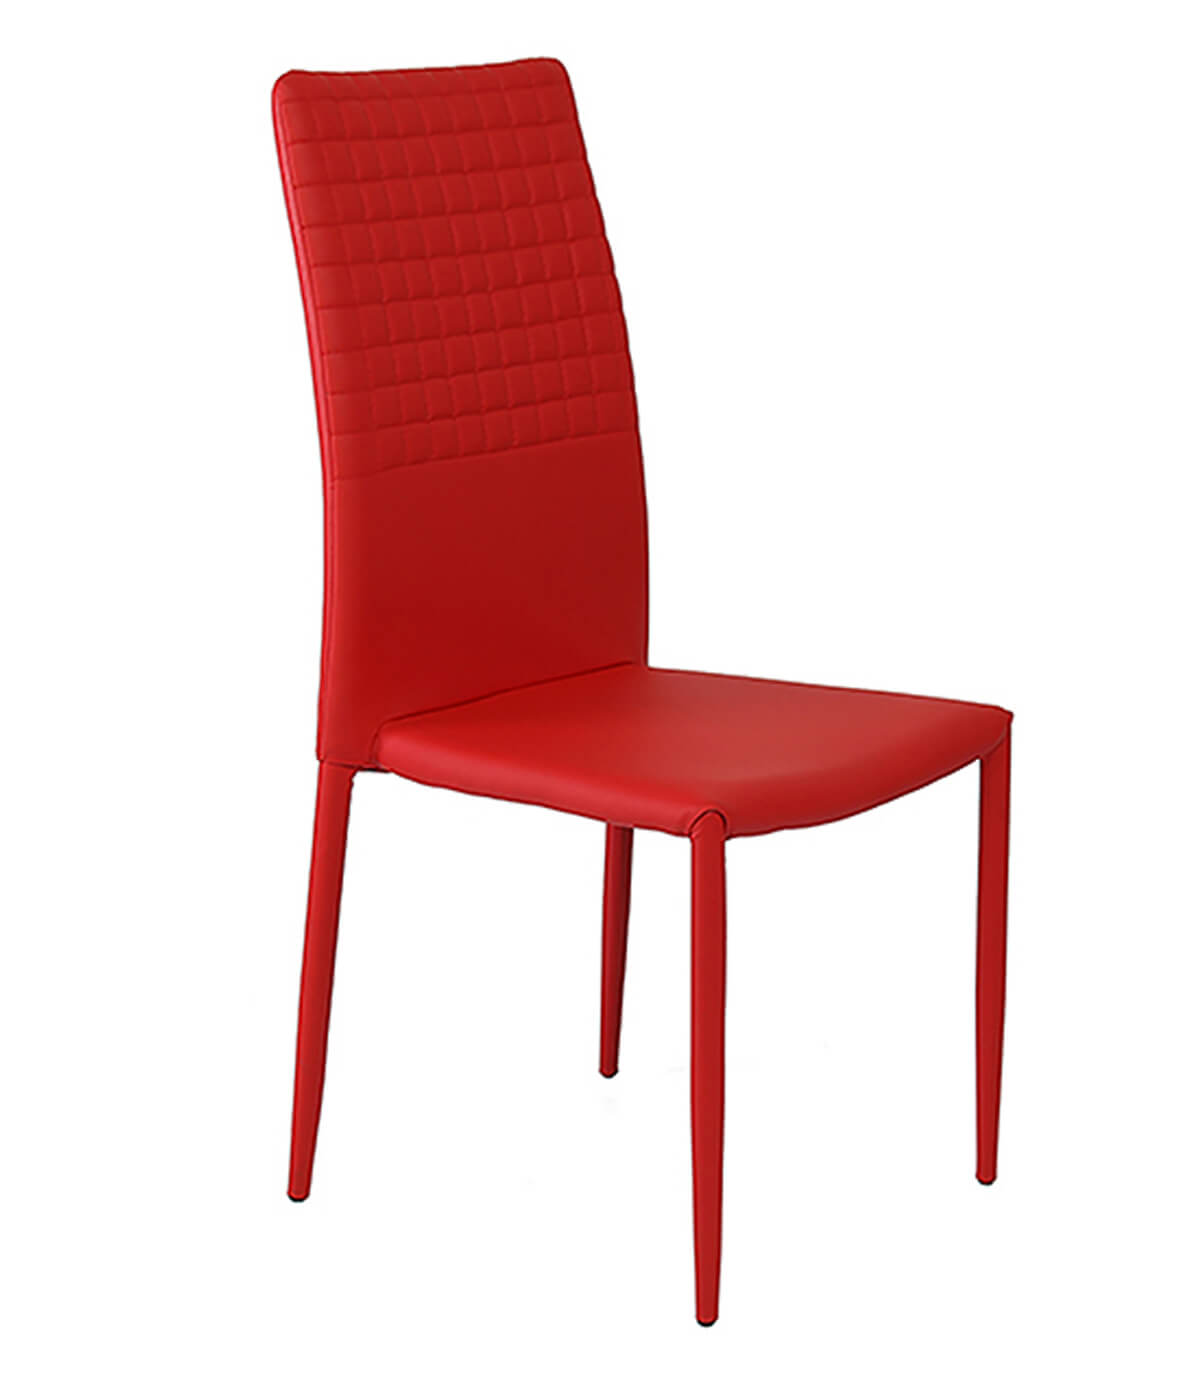 Cuba red modern faux leather dining chair manchester for Modern leather dining chairs uk